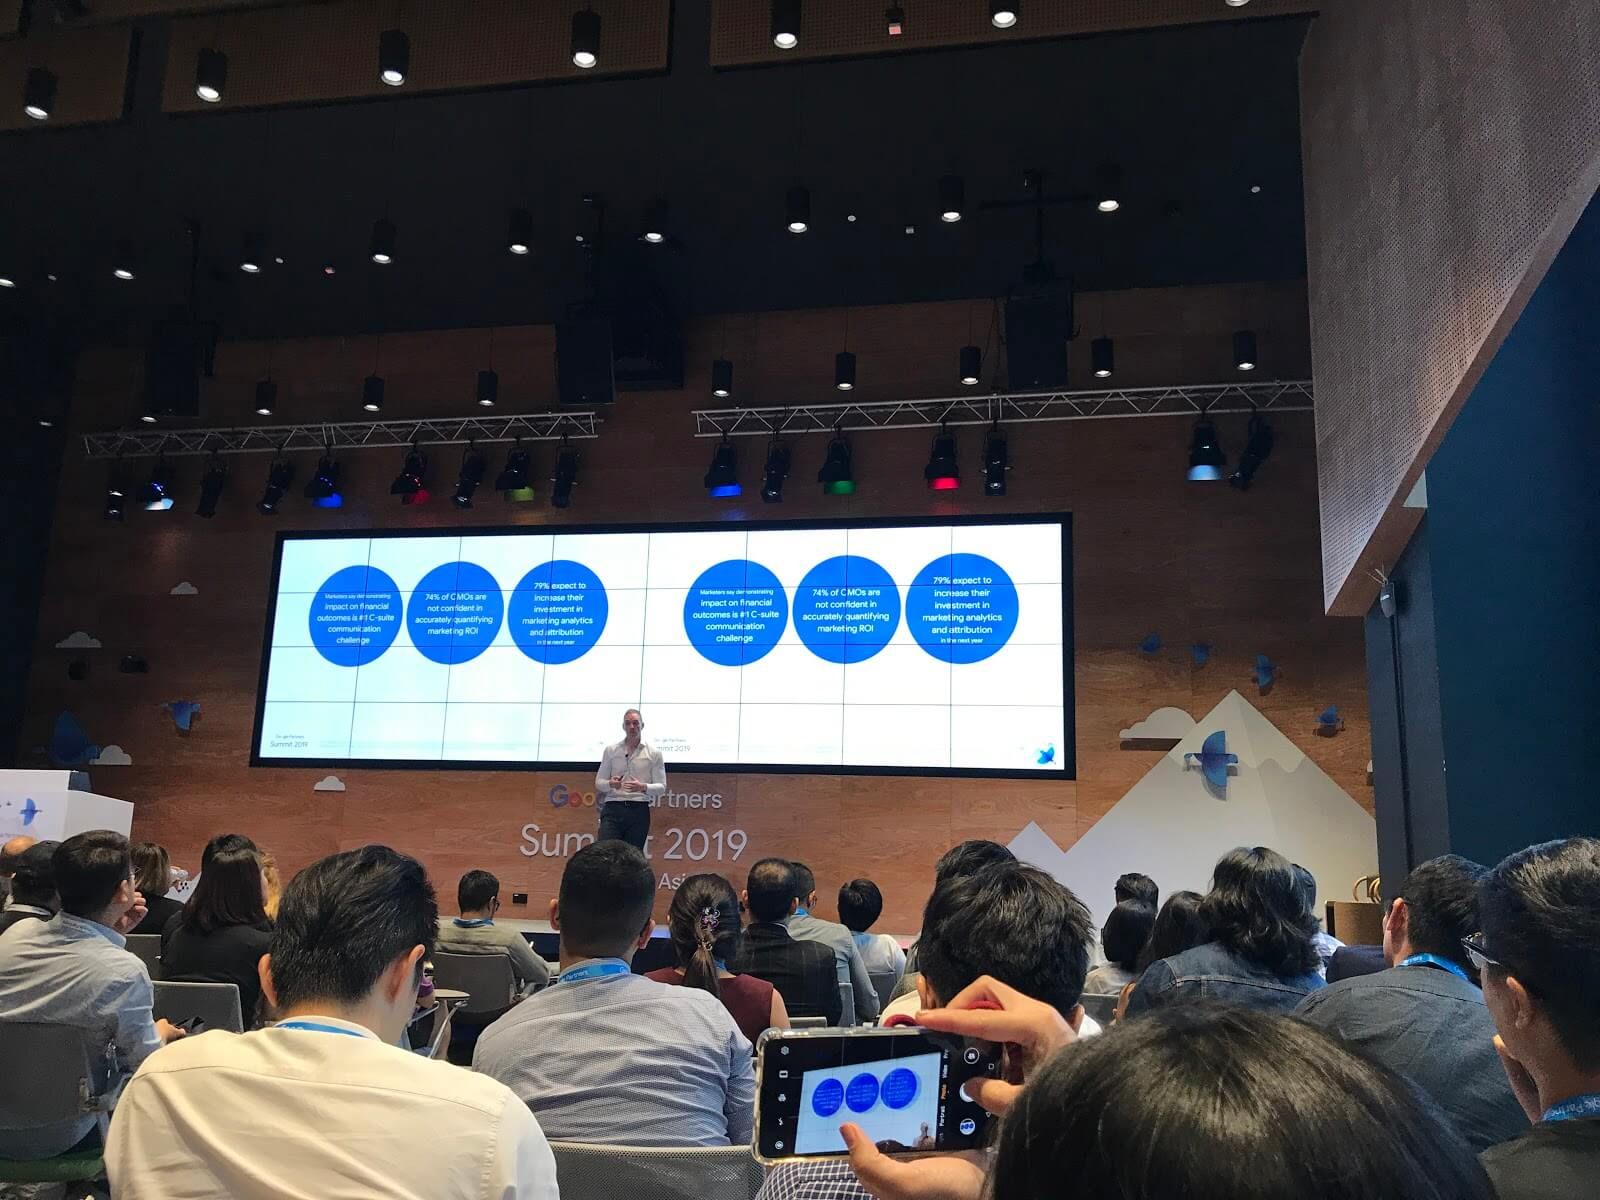 Tuong-lai-Agency-tai-event-Google-Summit